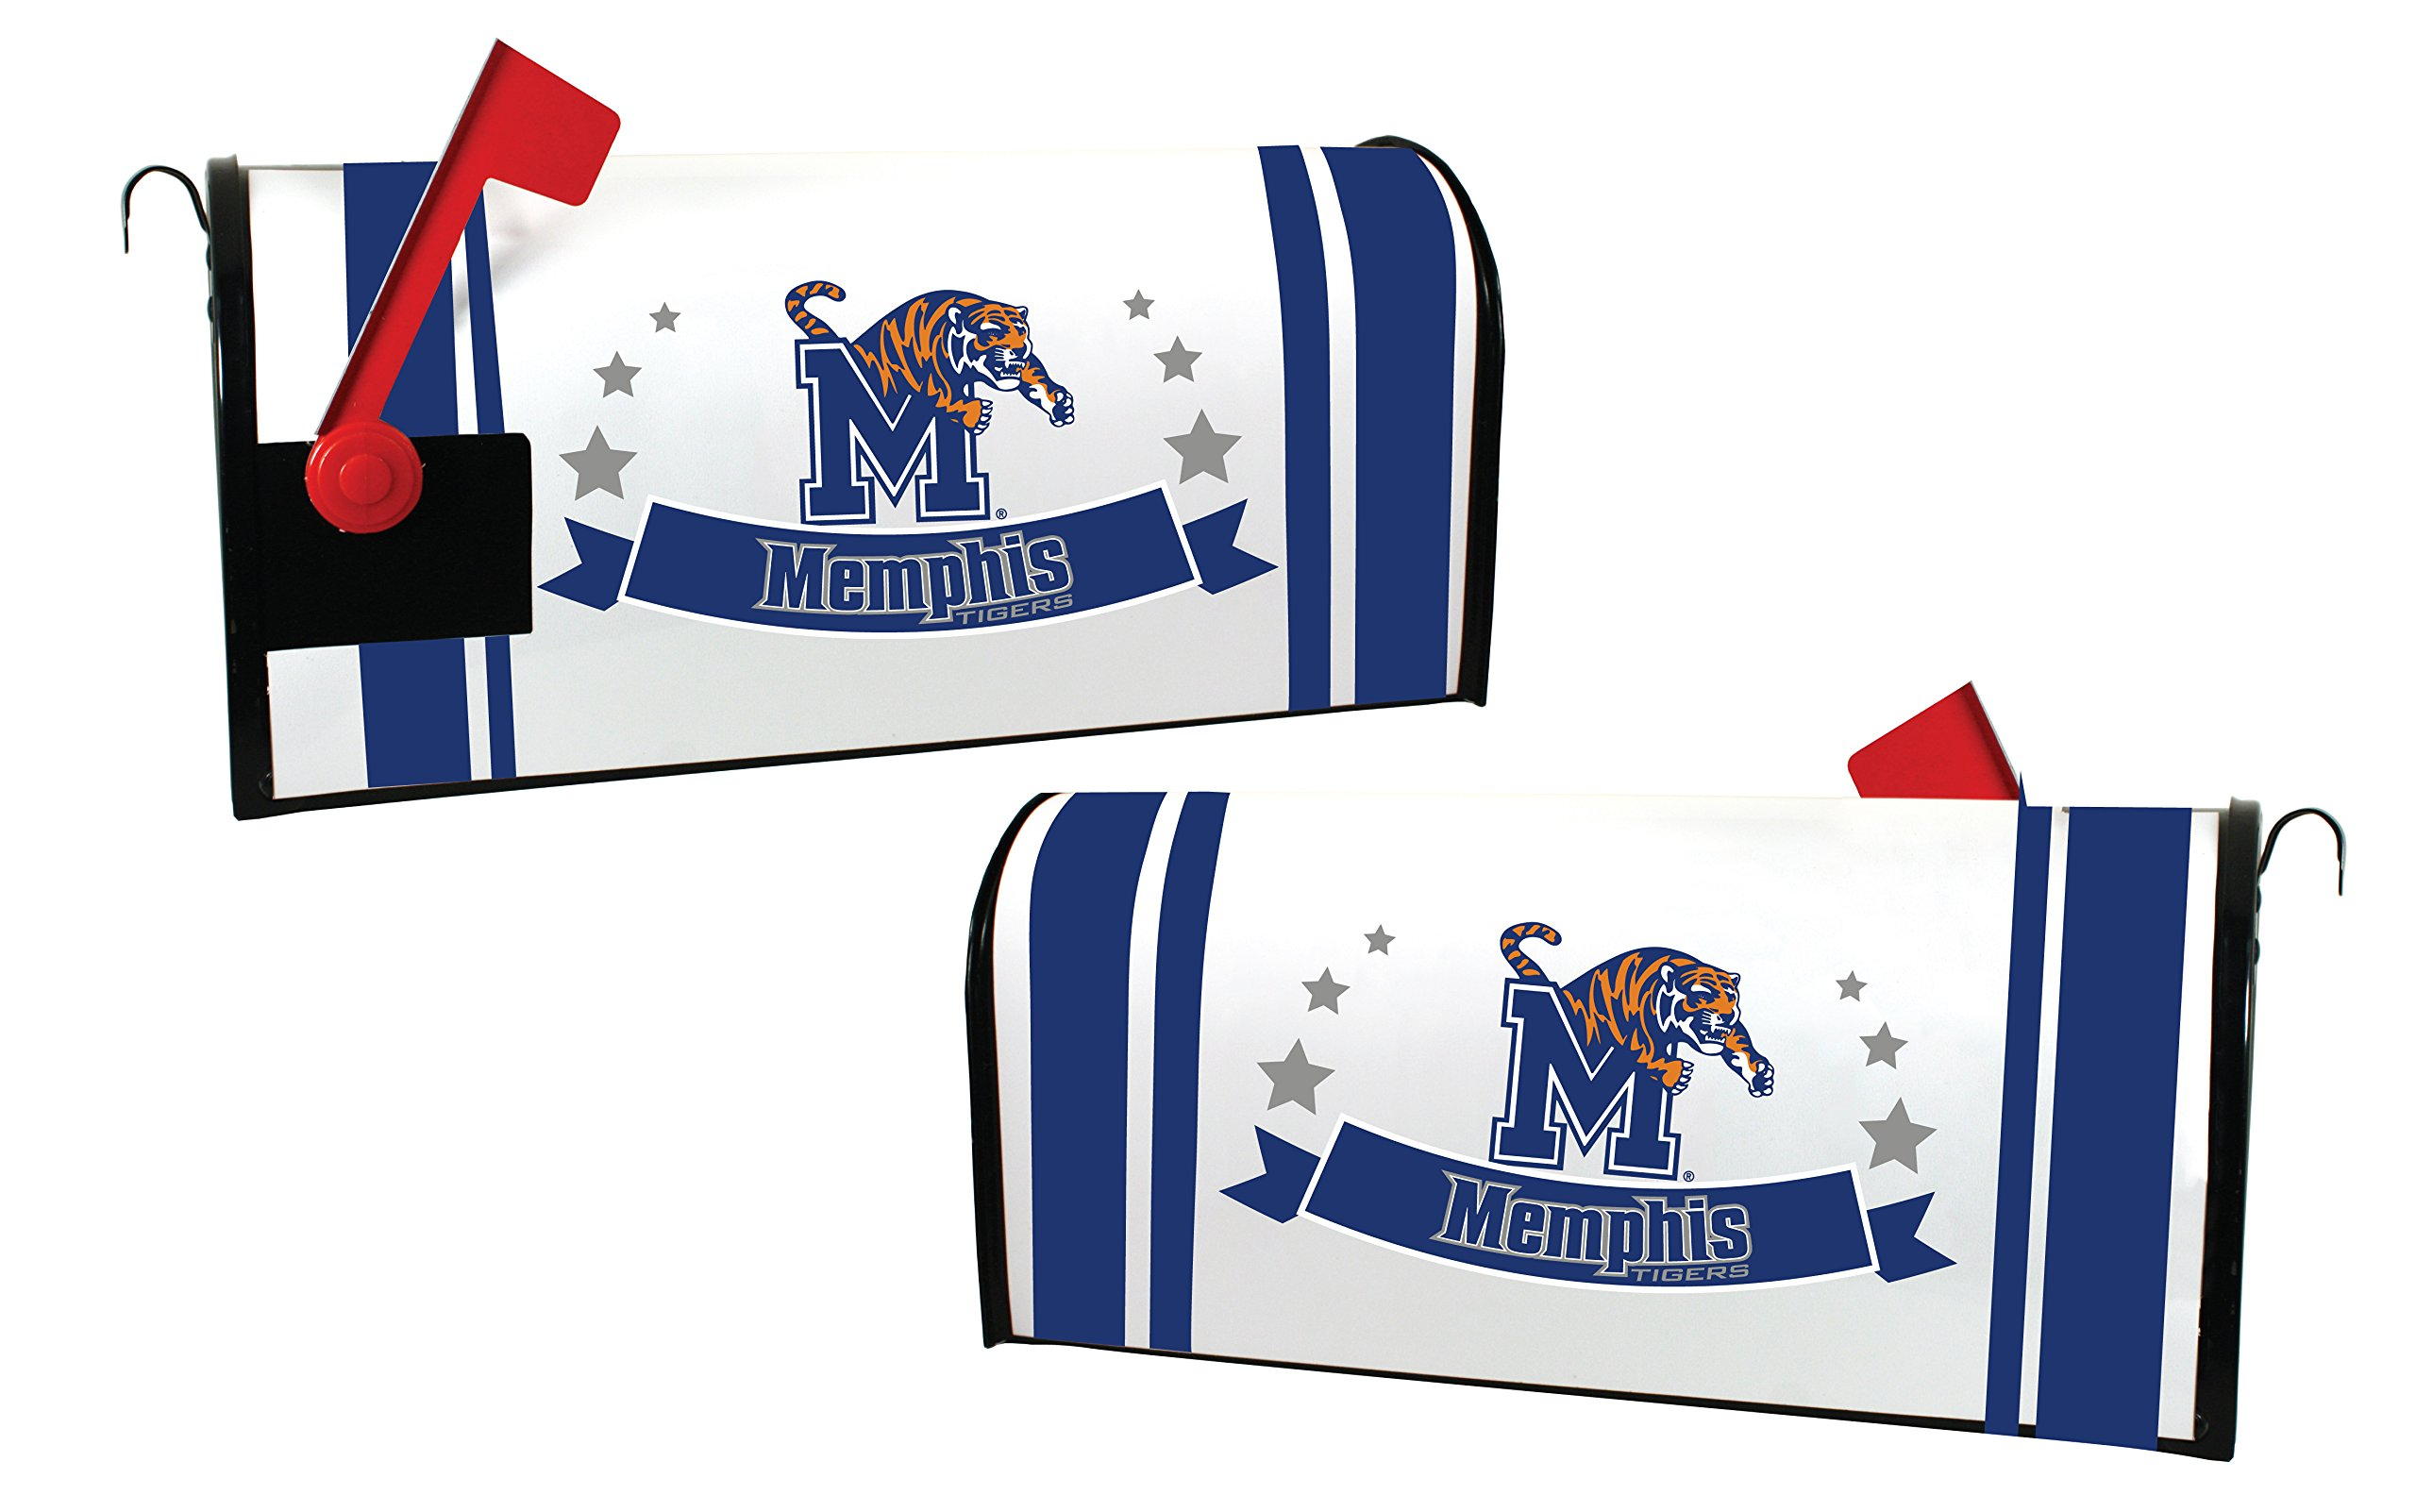 MEMPHIS TIGERS MAILBOX COVER-UNIVERSITY OF MEMPHIS MAGNETIC MAIL BOX COVER-NEW FOR 2016!